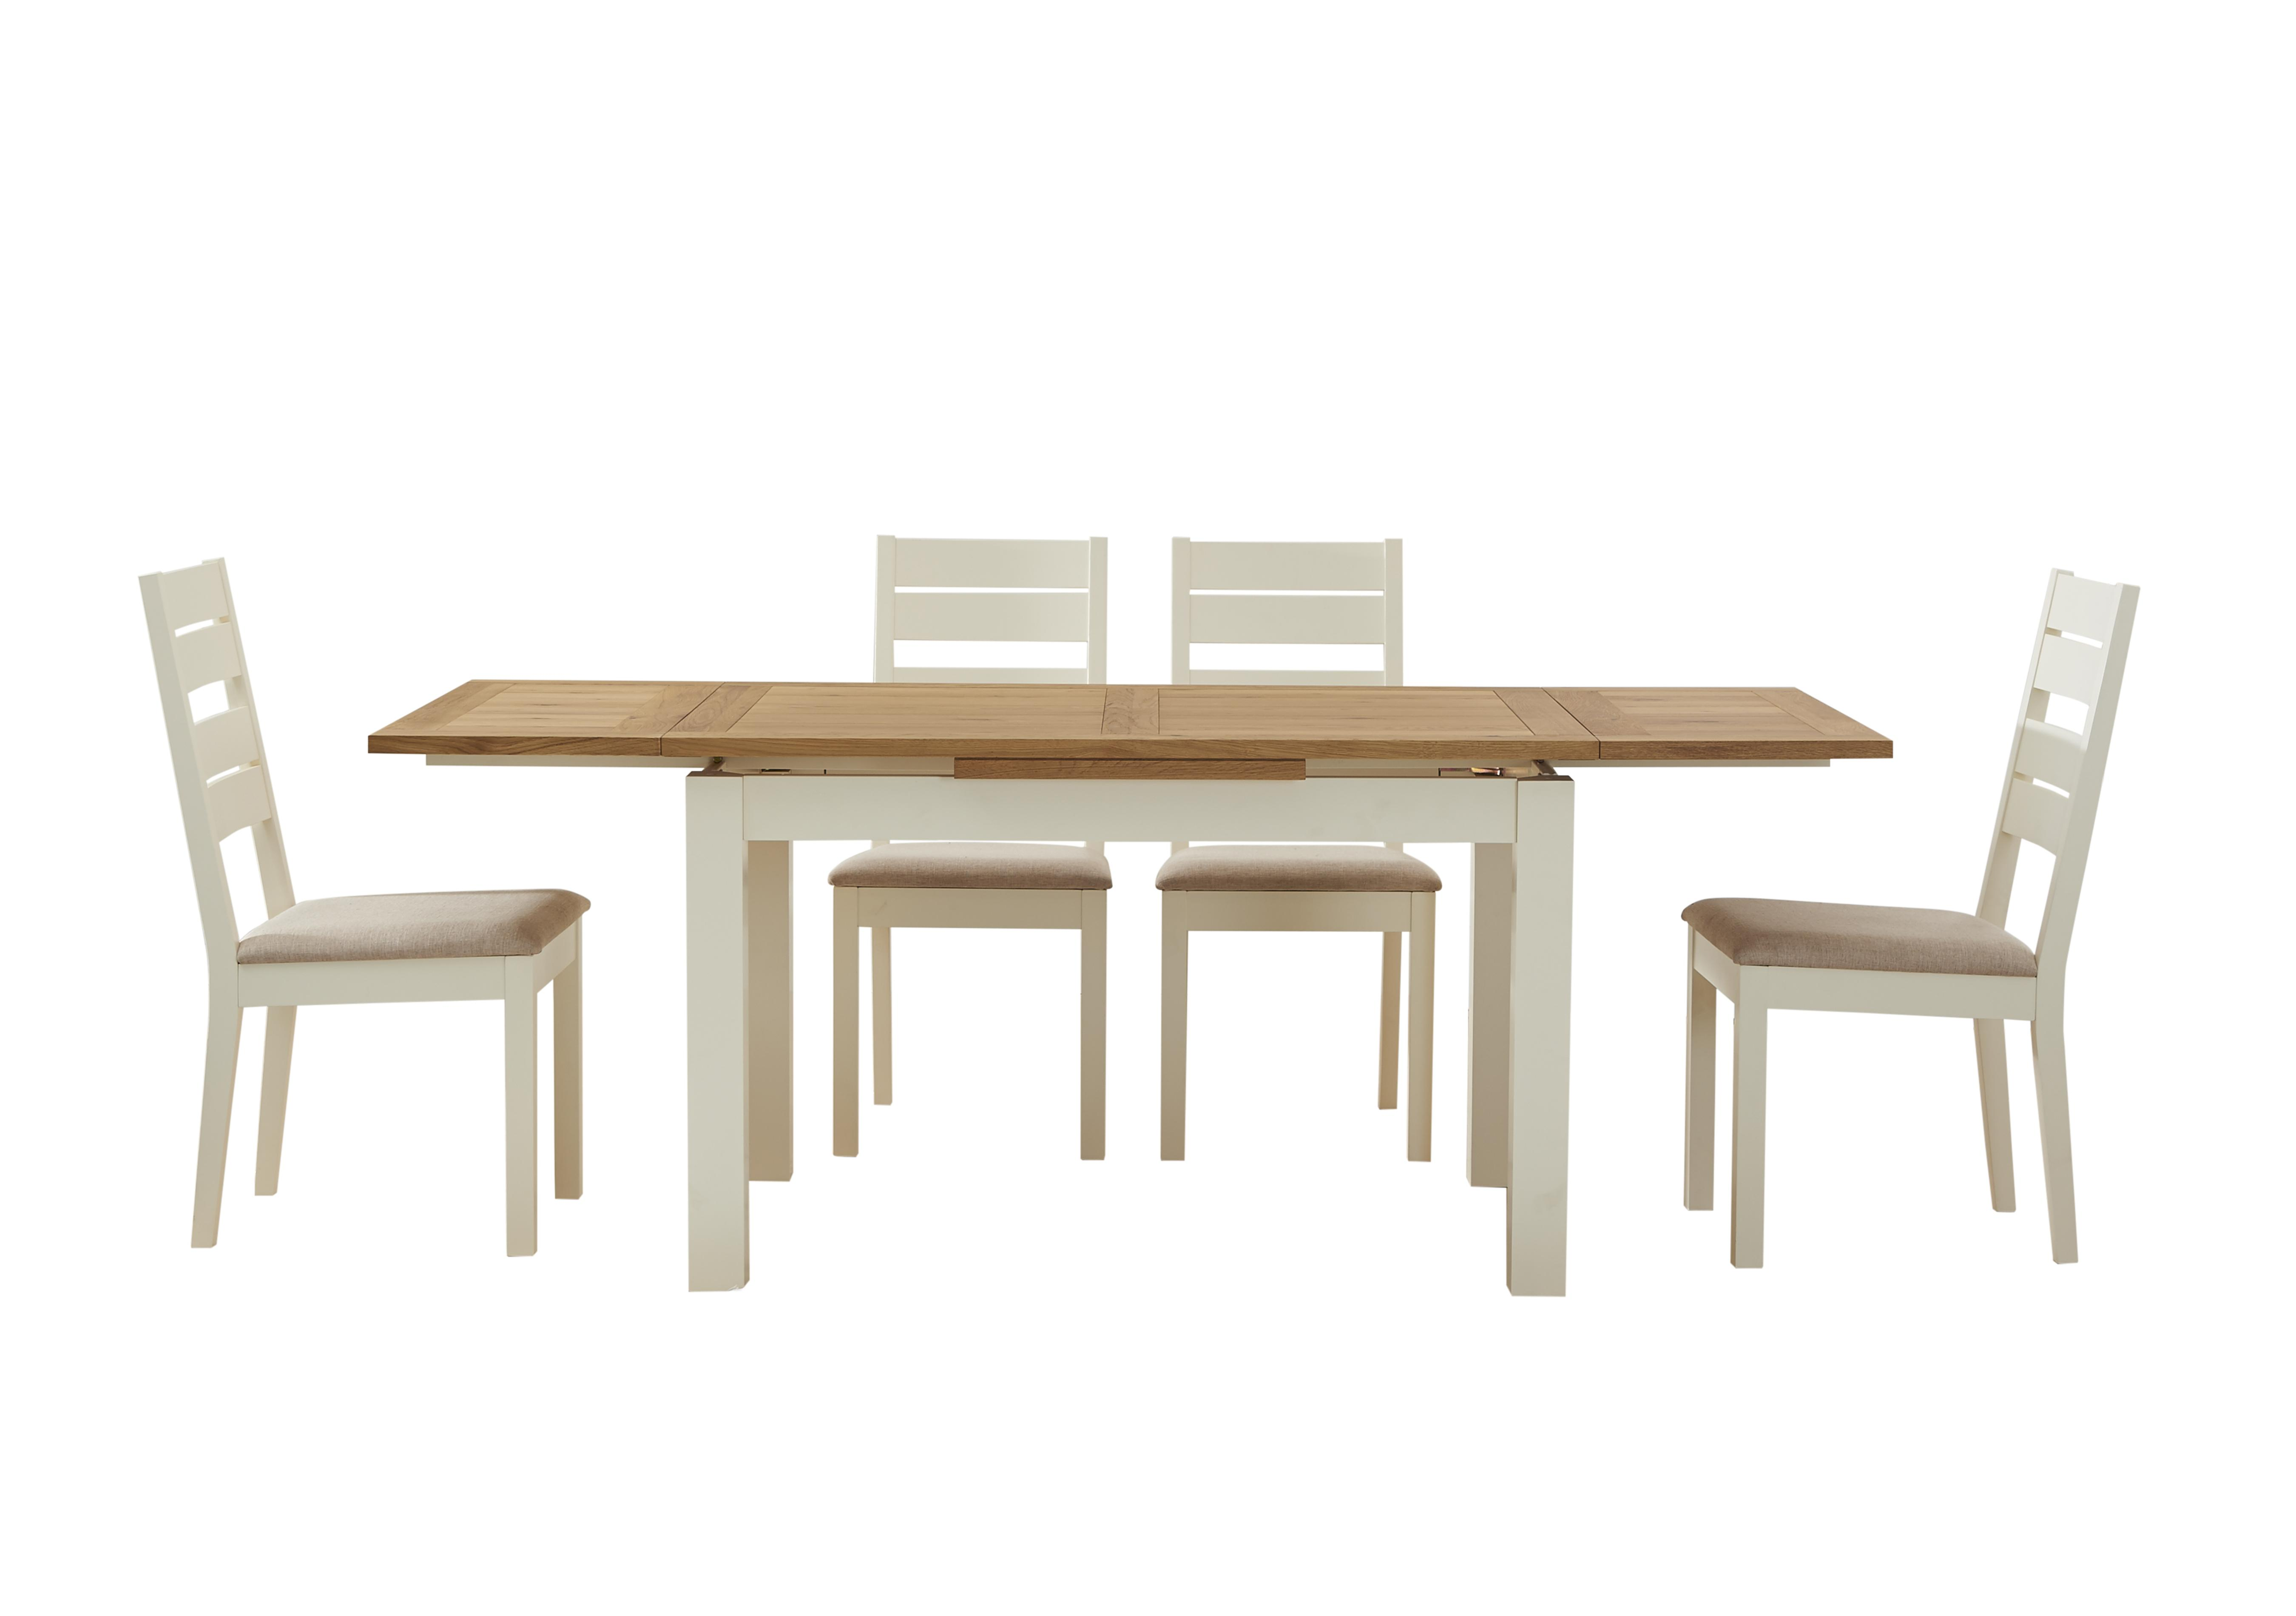 Furnitureland Compton Extending Dining Table And 4 Slatted Back Chairs